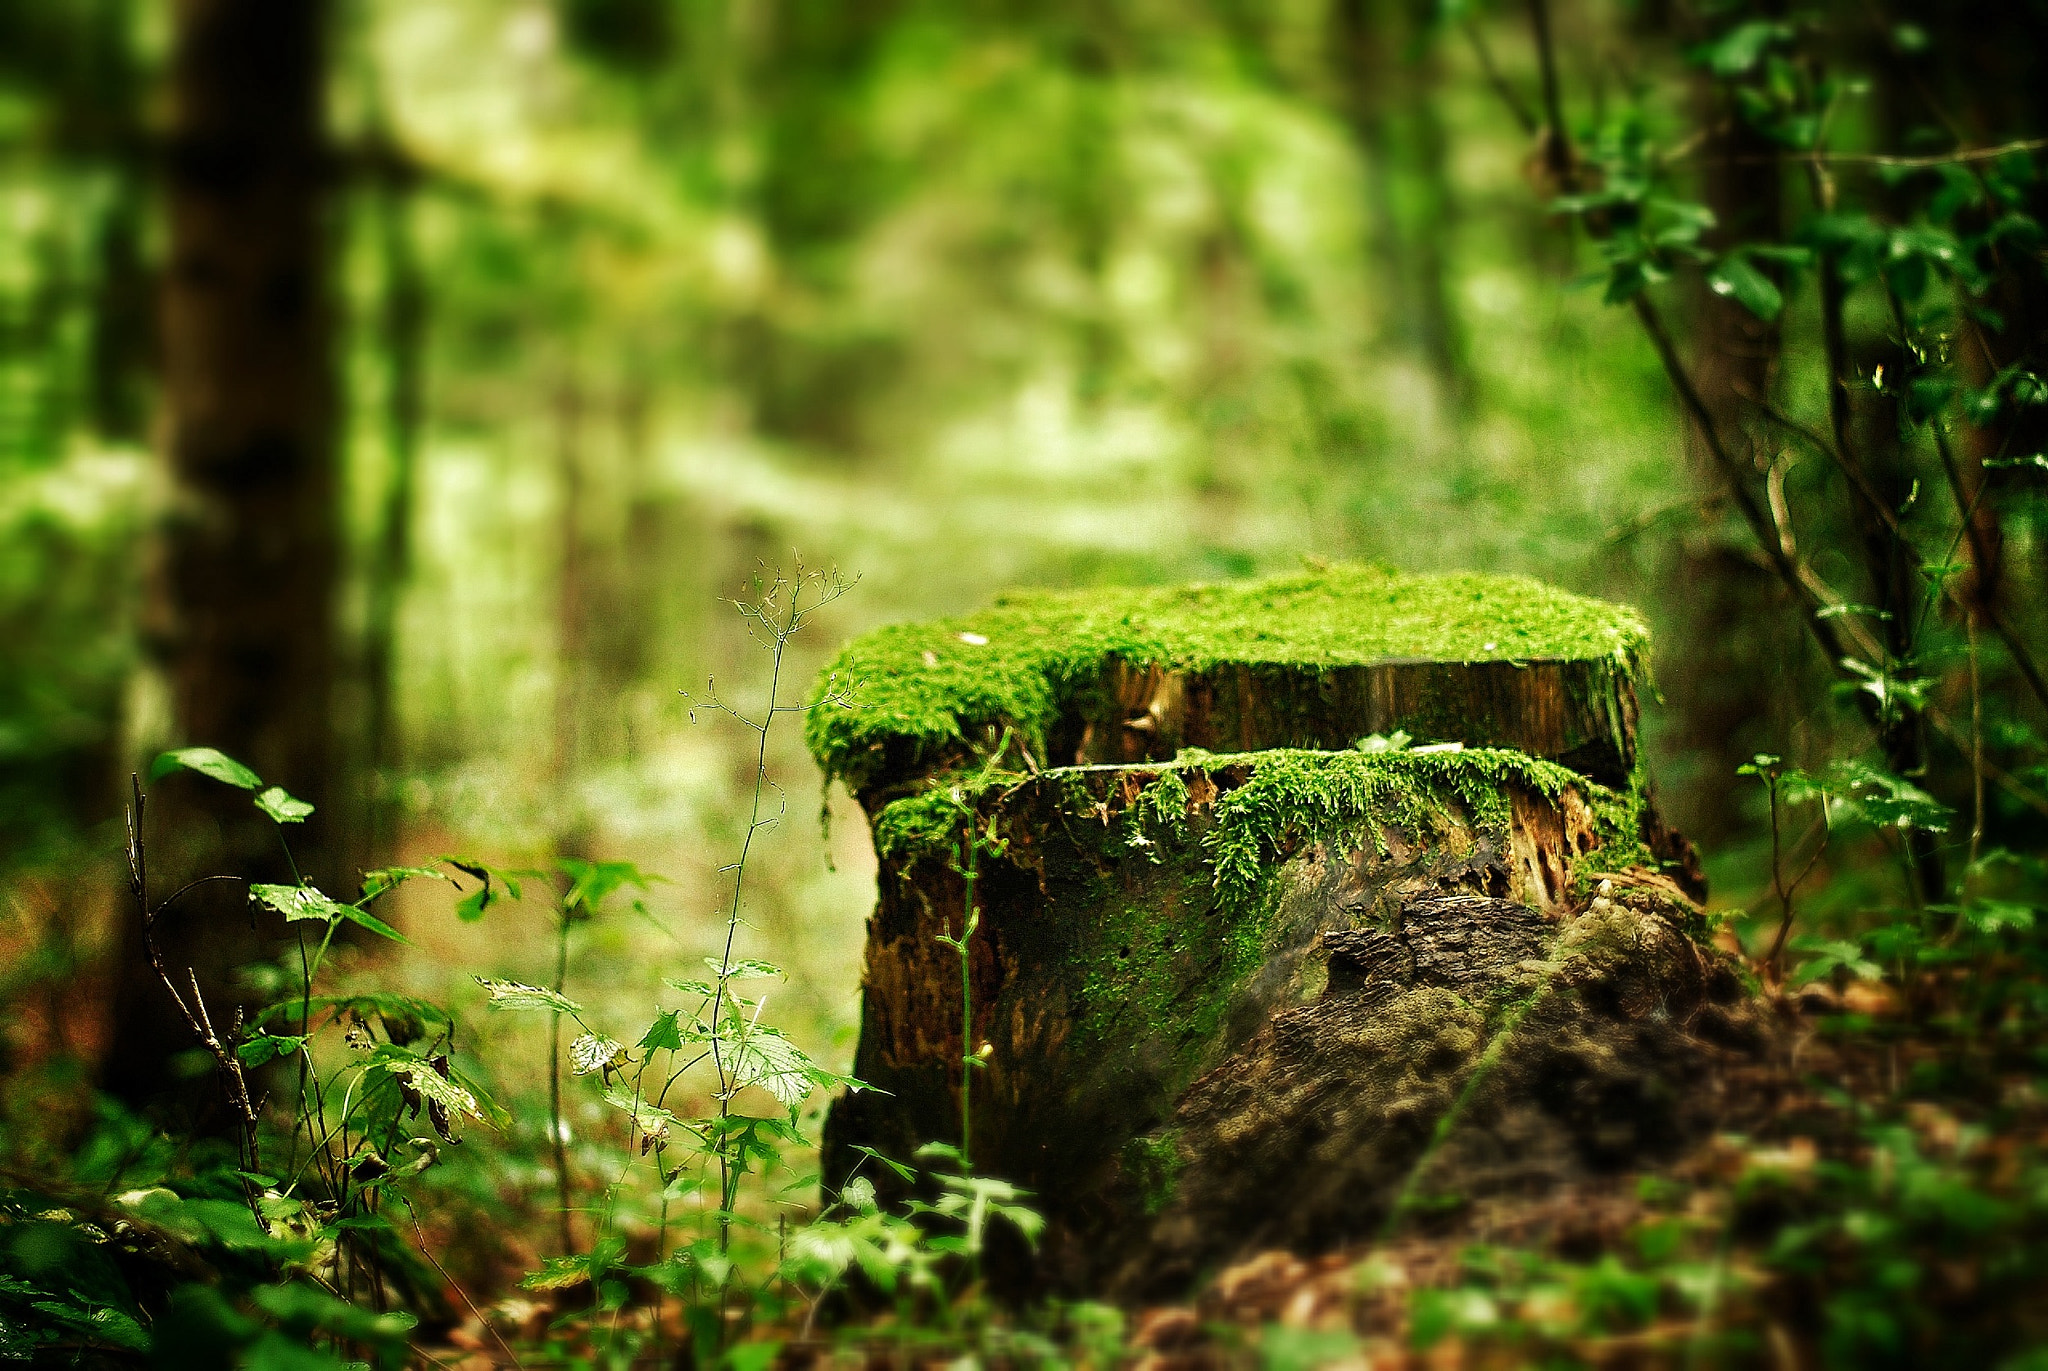 Photograph In the forest by Francesco Zambotti on 500px